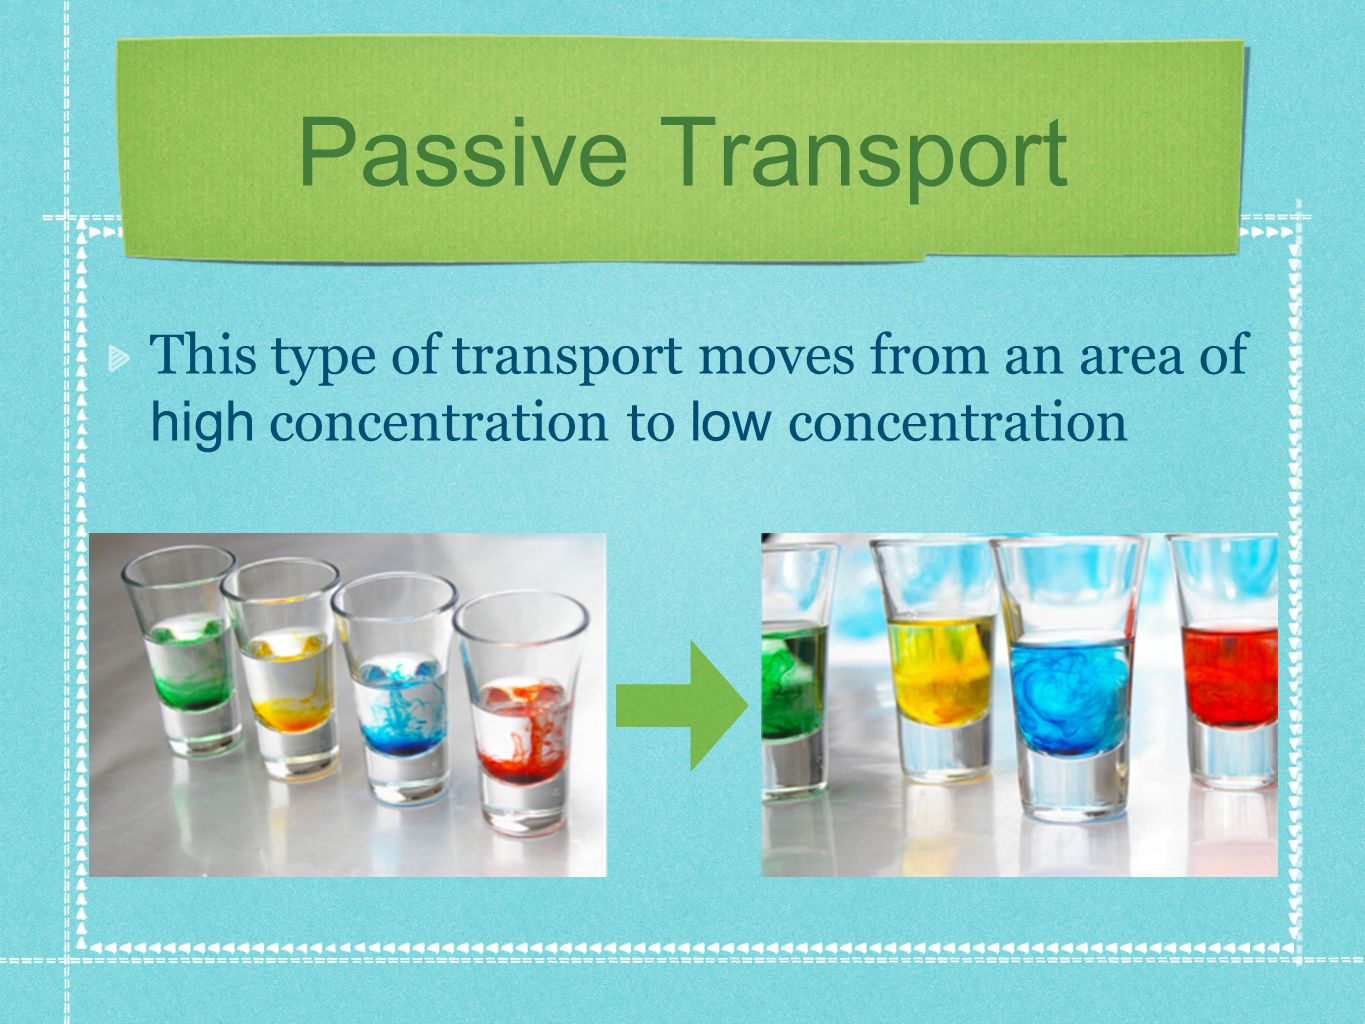 Passive Transport This type of transport moves from an area of high concentration to low concentration.